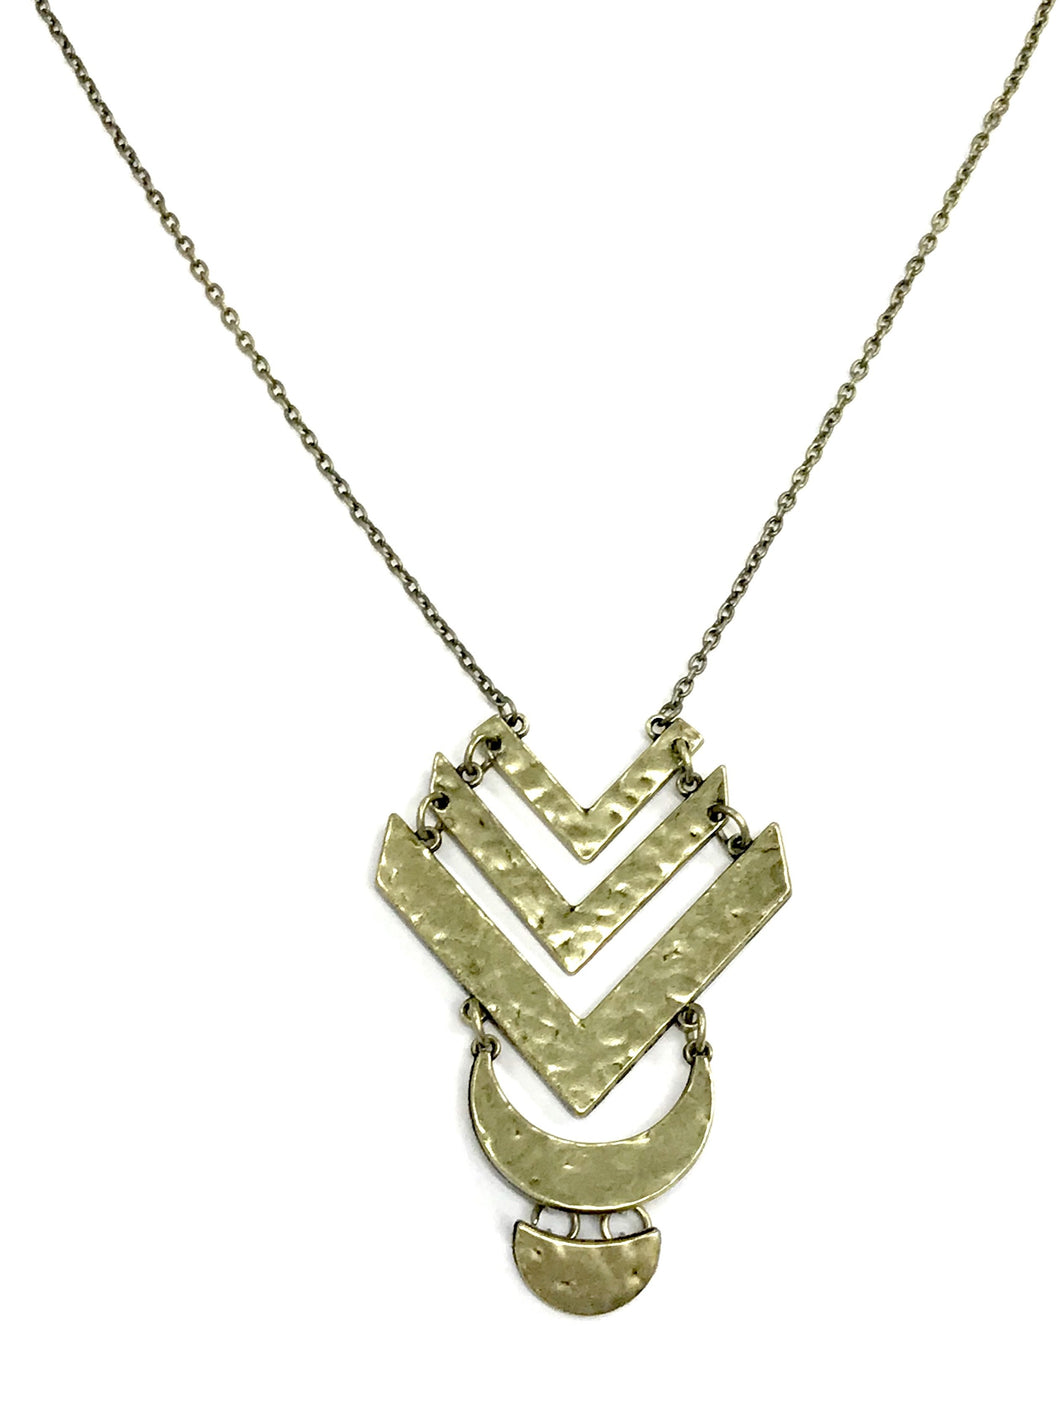 Artisan Edge Brass Necklace